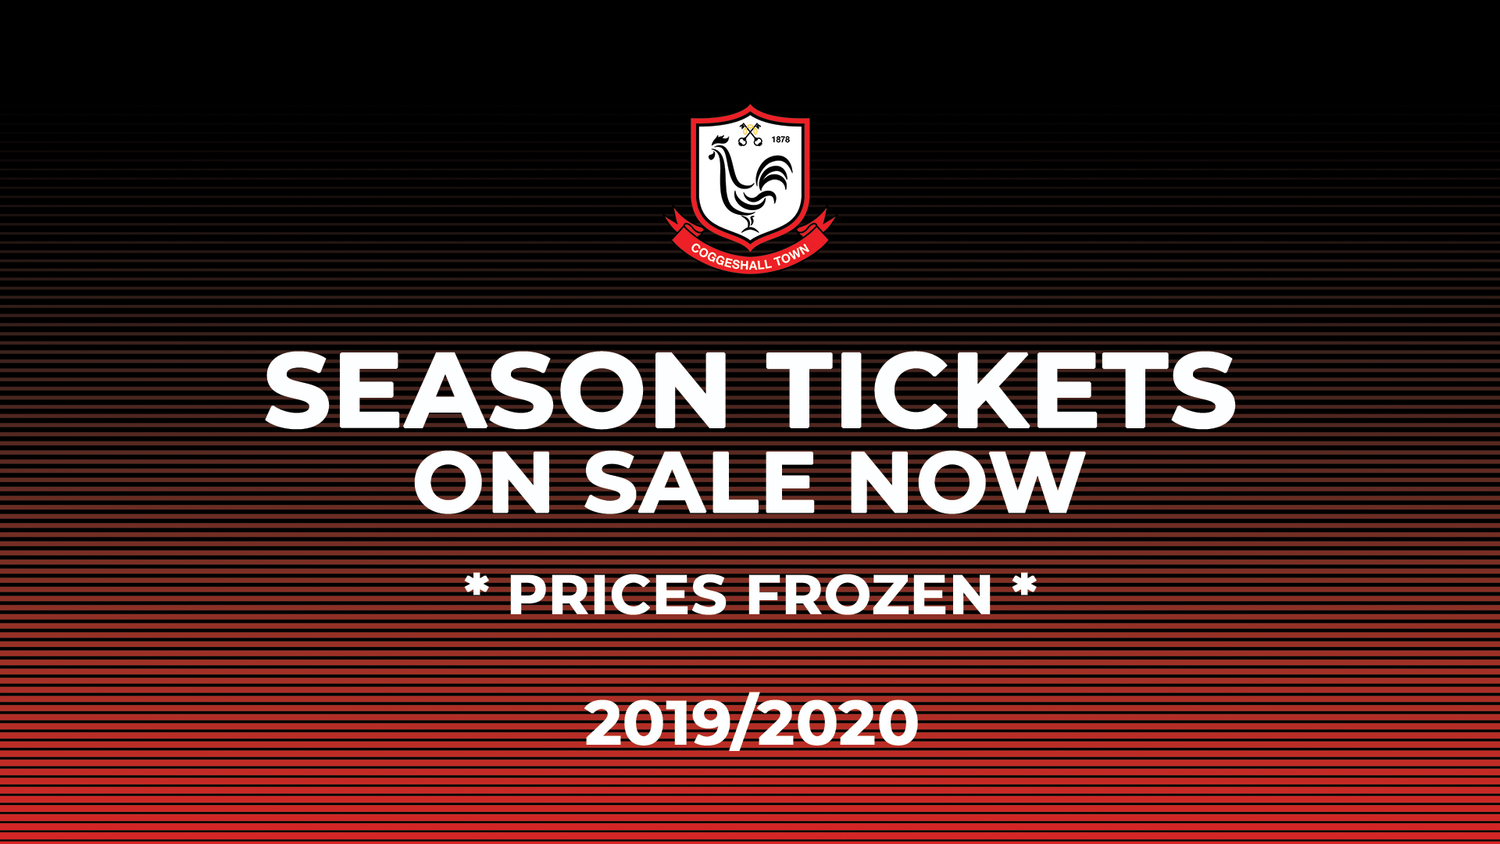 19/20 Season Tickets On Sale Now!